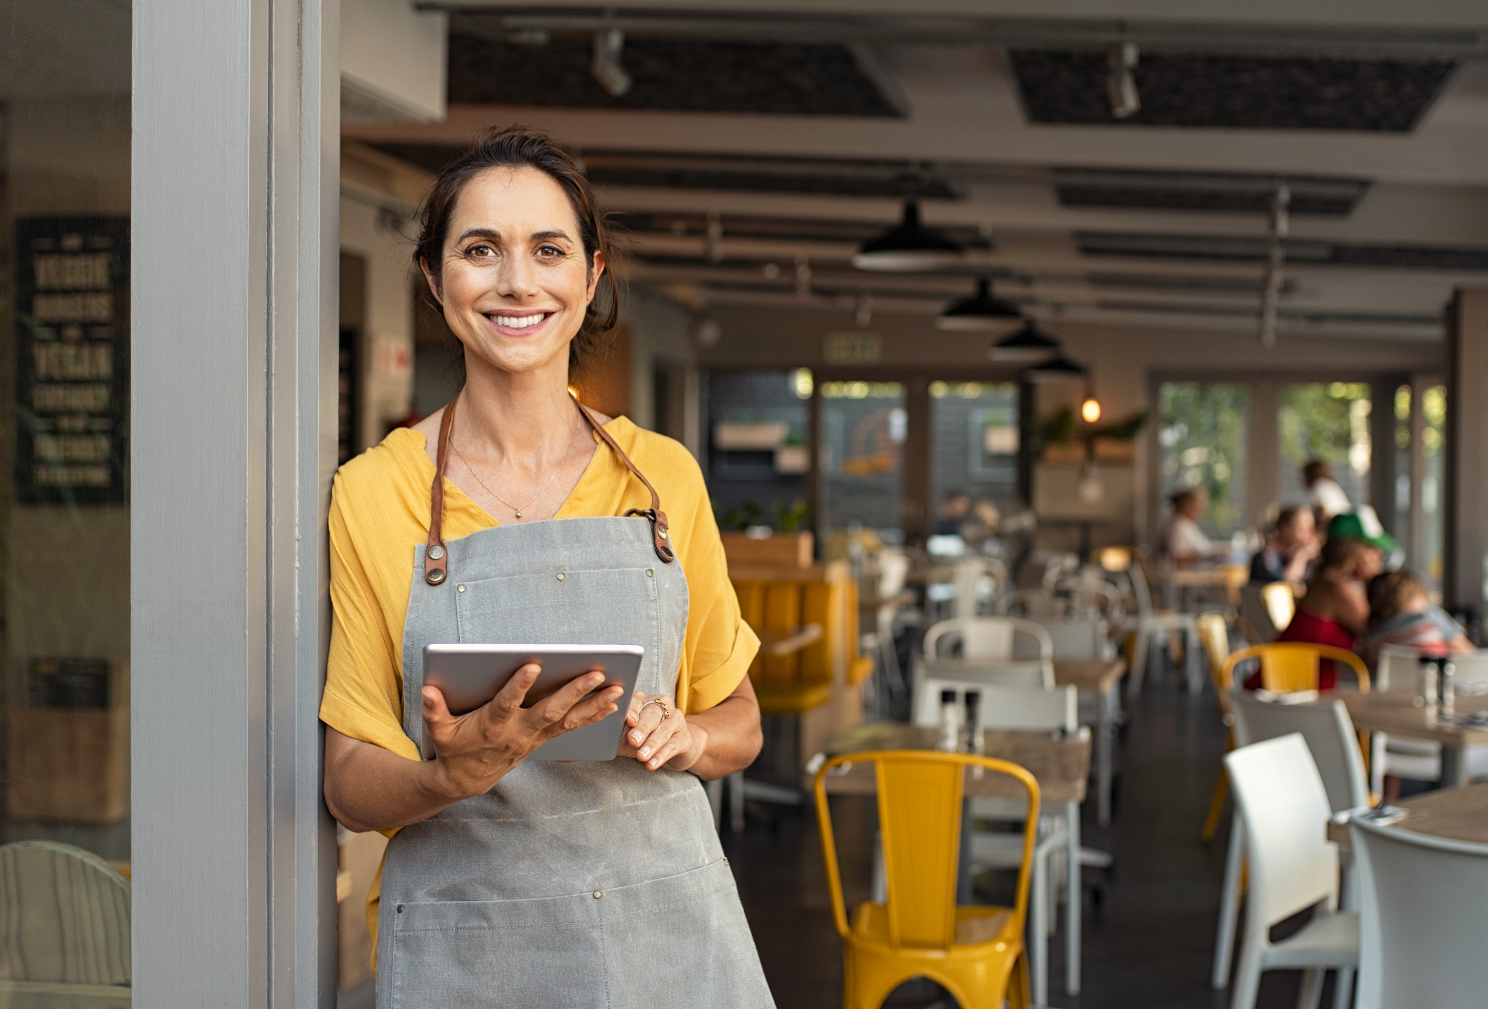 Woman wearing an apron and holding a tablet